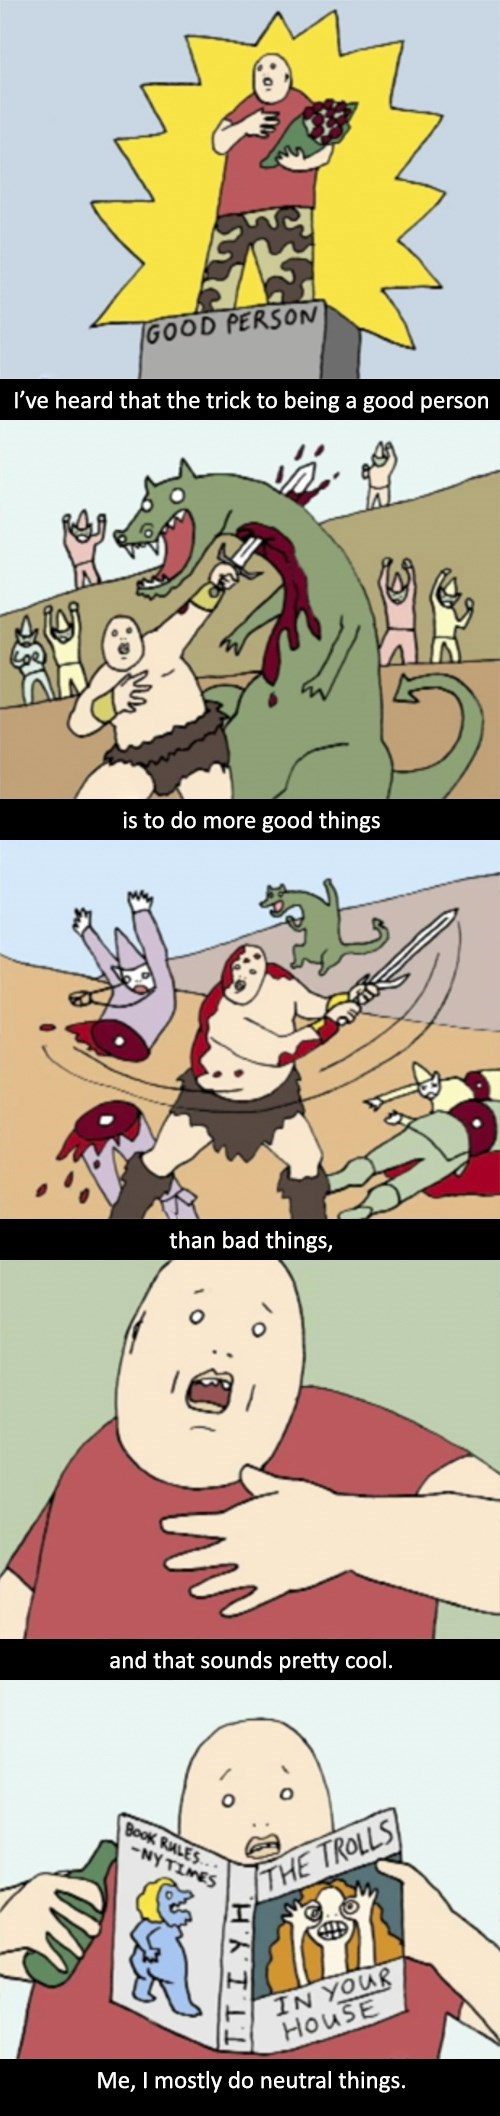 funny-web-comics-the-trick-to-being-a-good-person